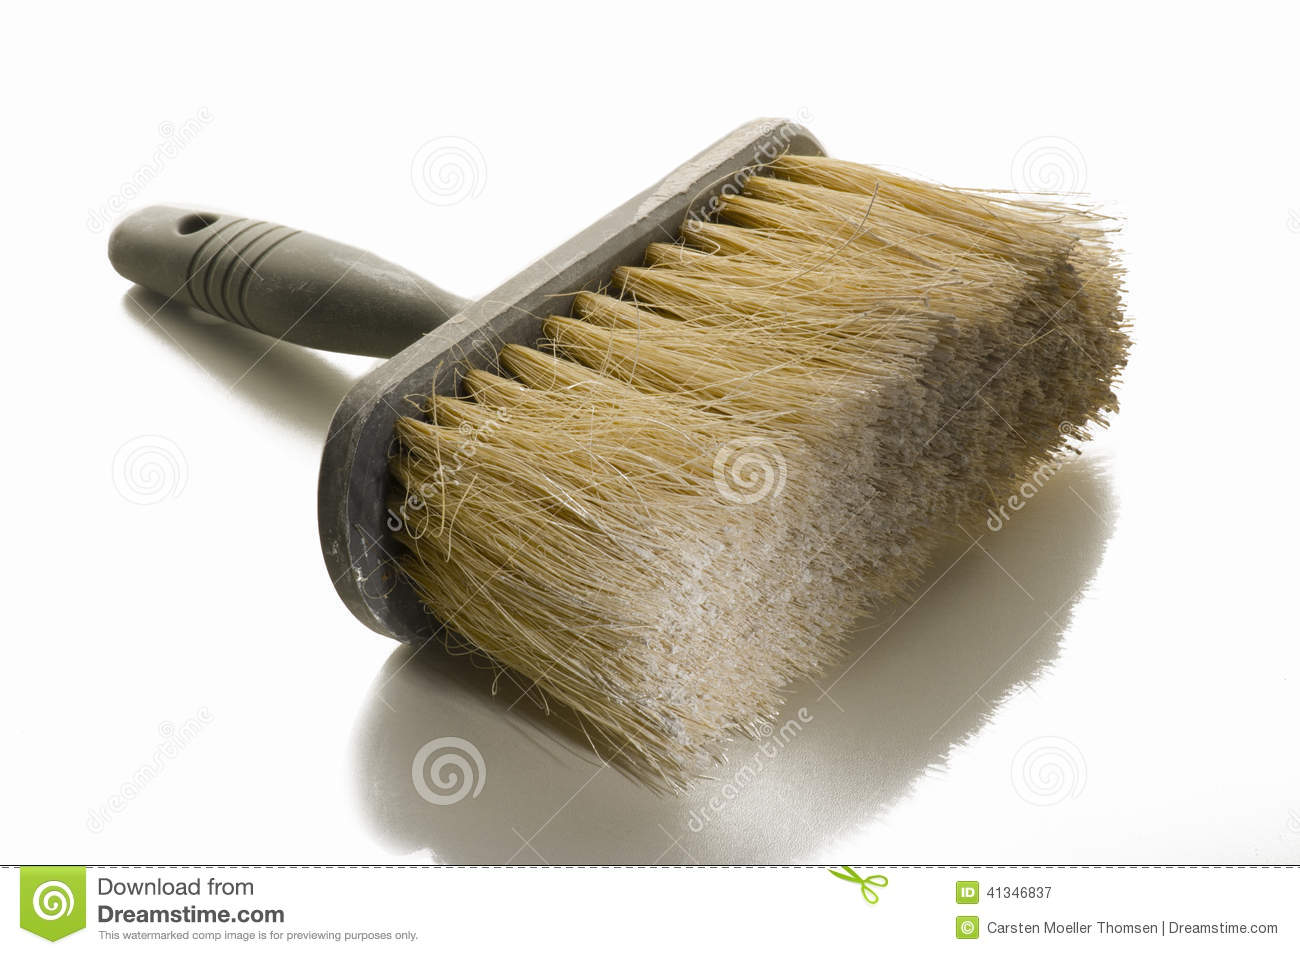 What Is Best To Clean A Paint Brush With